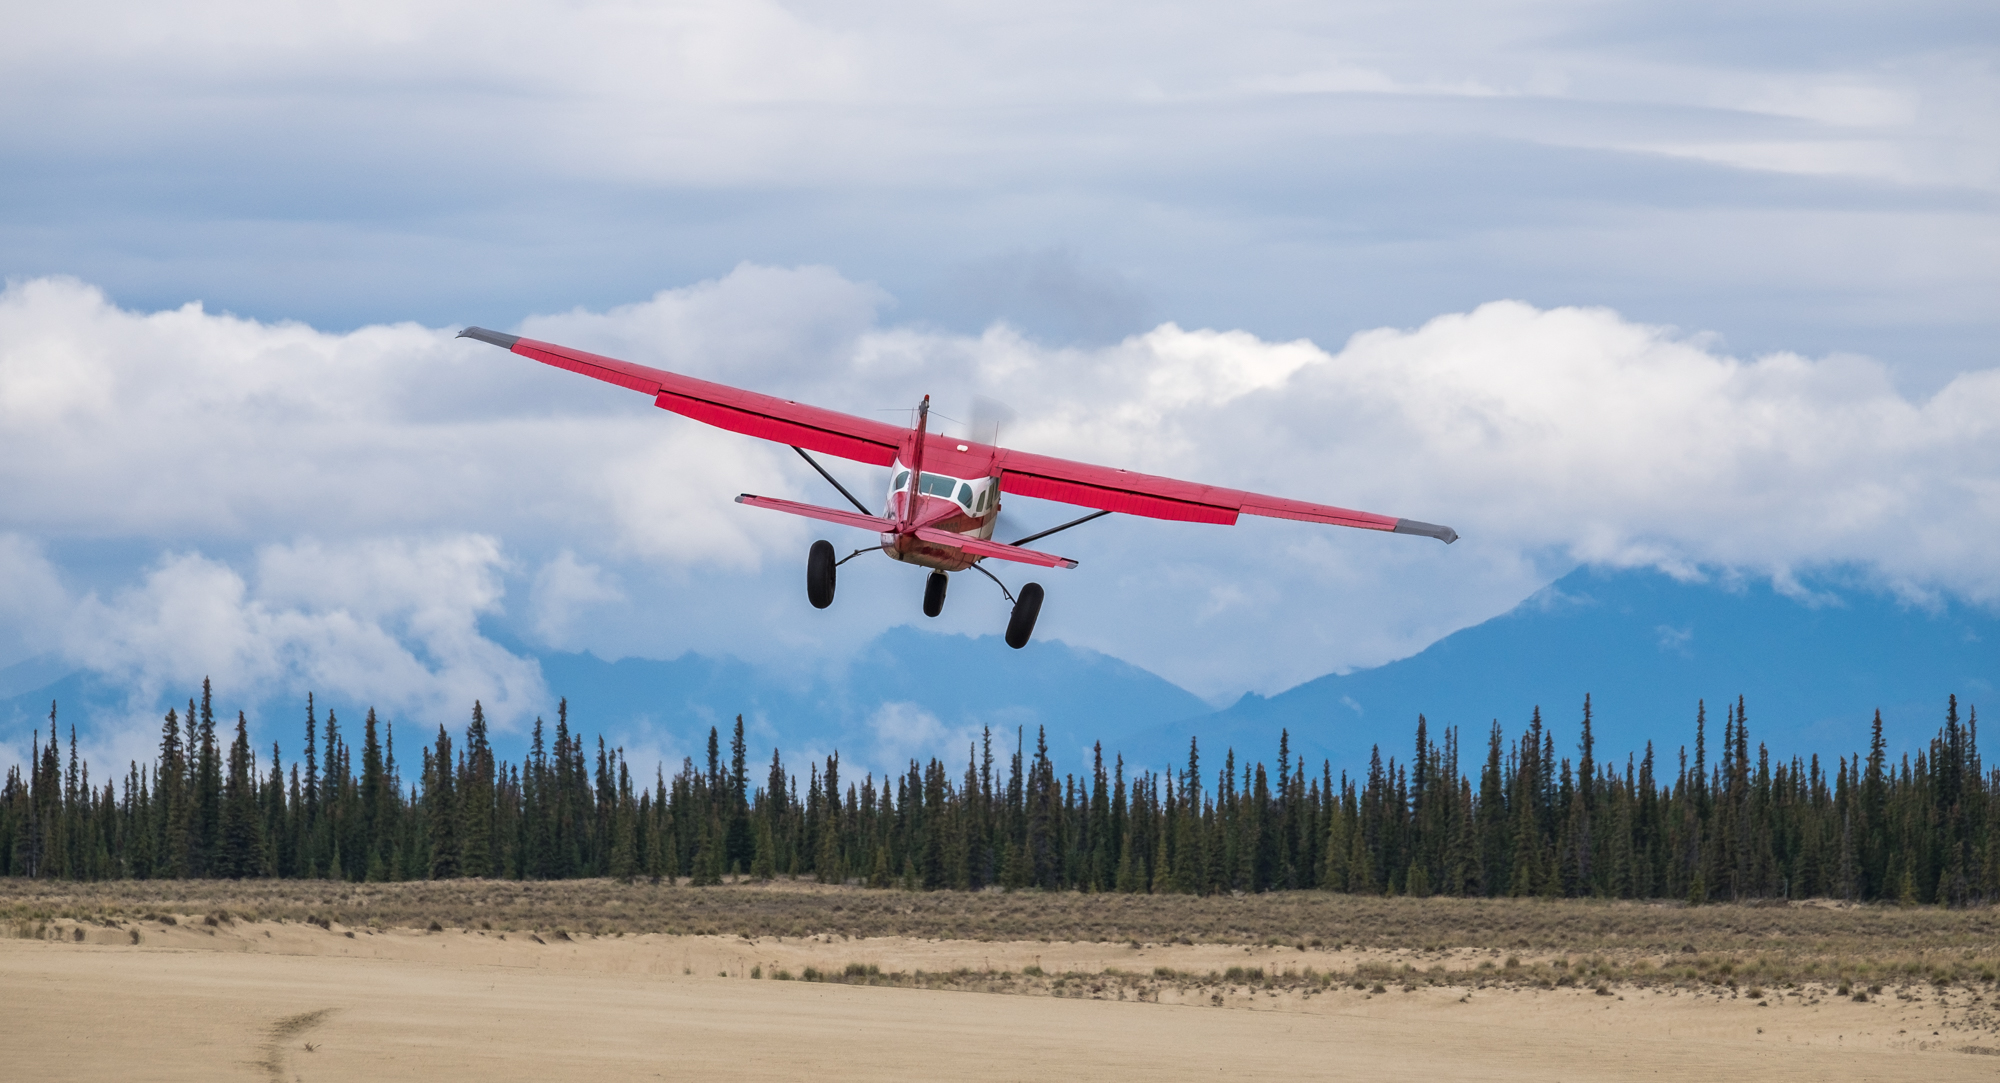 Our bush plane with tundra tires takes off, leaving us with the solitude of Kobuk Valley National Park in Alaska.